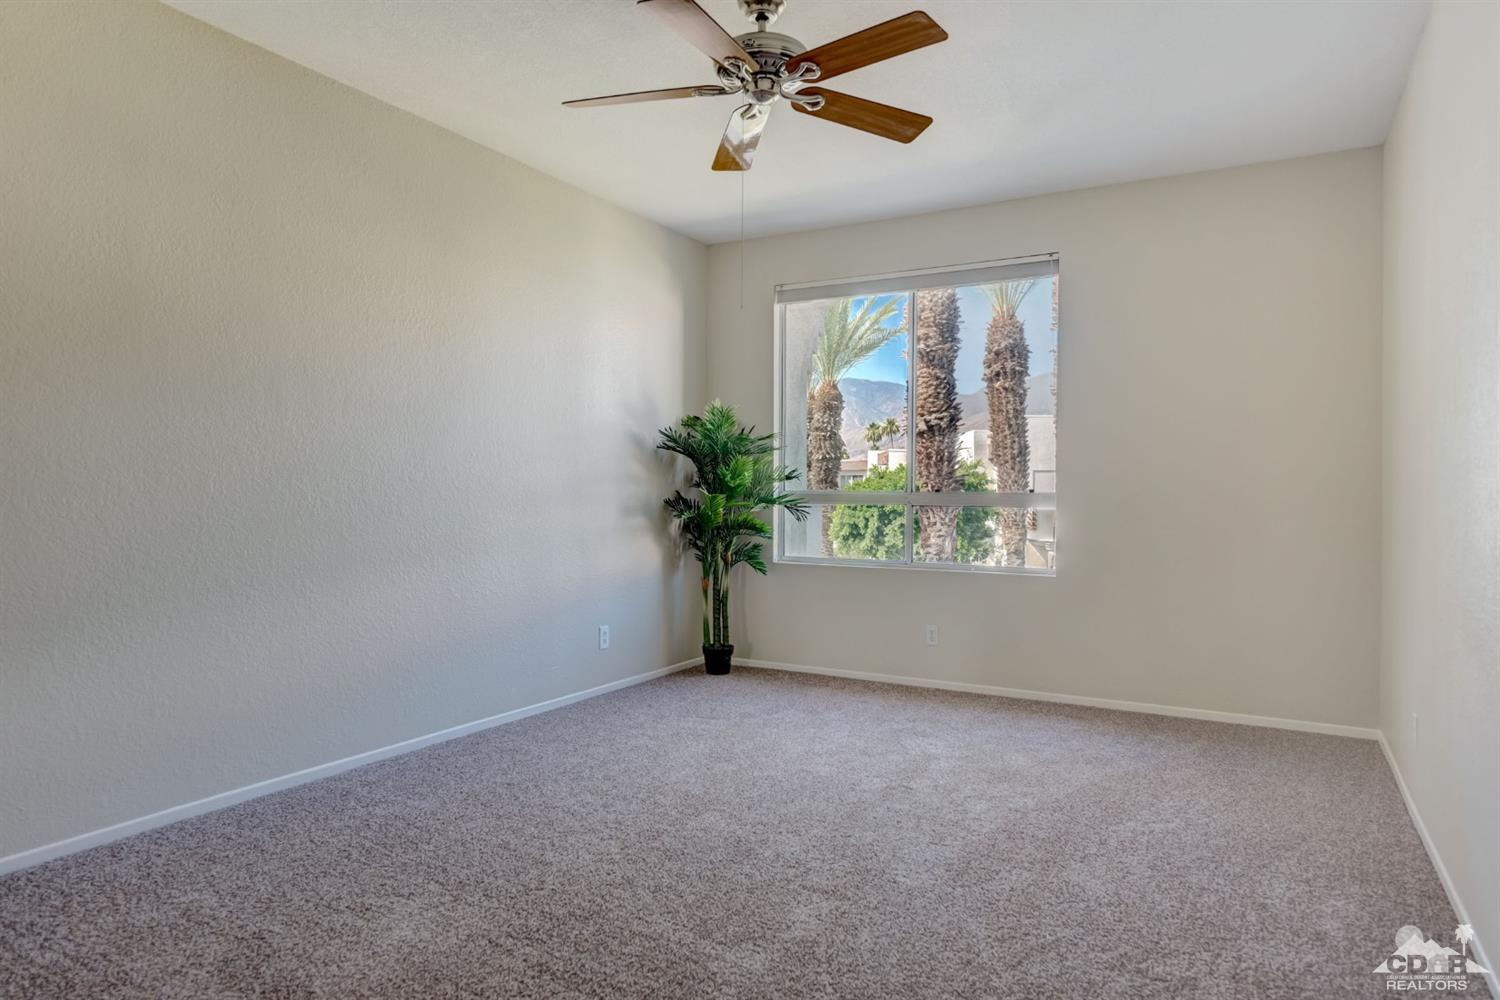 401 S El Cielo Road, Palm Springs, California 92262, 2 Bedrooms Bedrooms, ,2 BathroomsBathrooms,Residential,Sold,401 S El Cielo Road,219015553